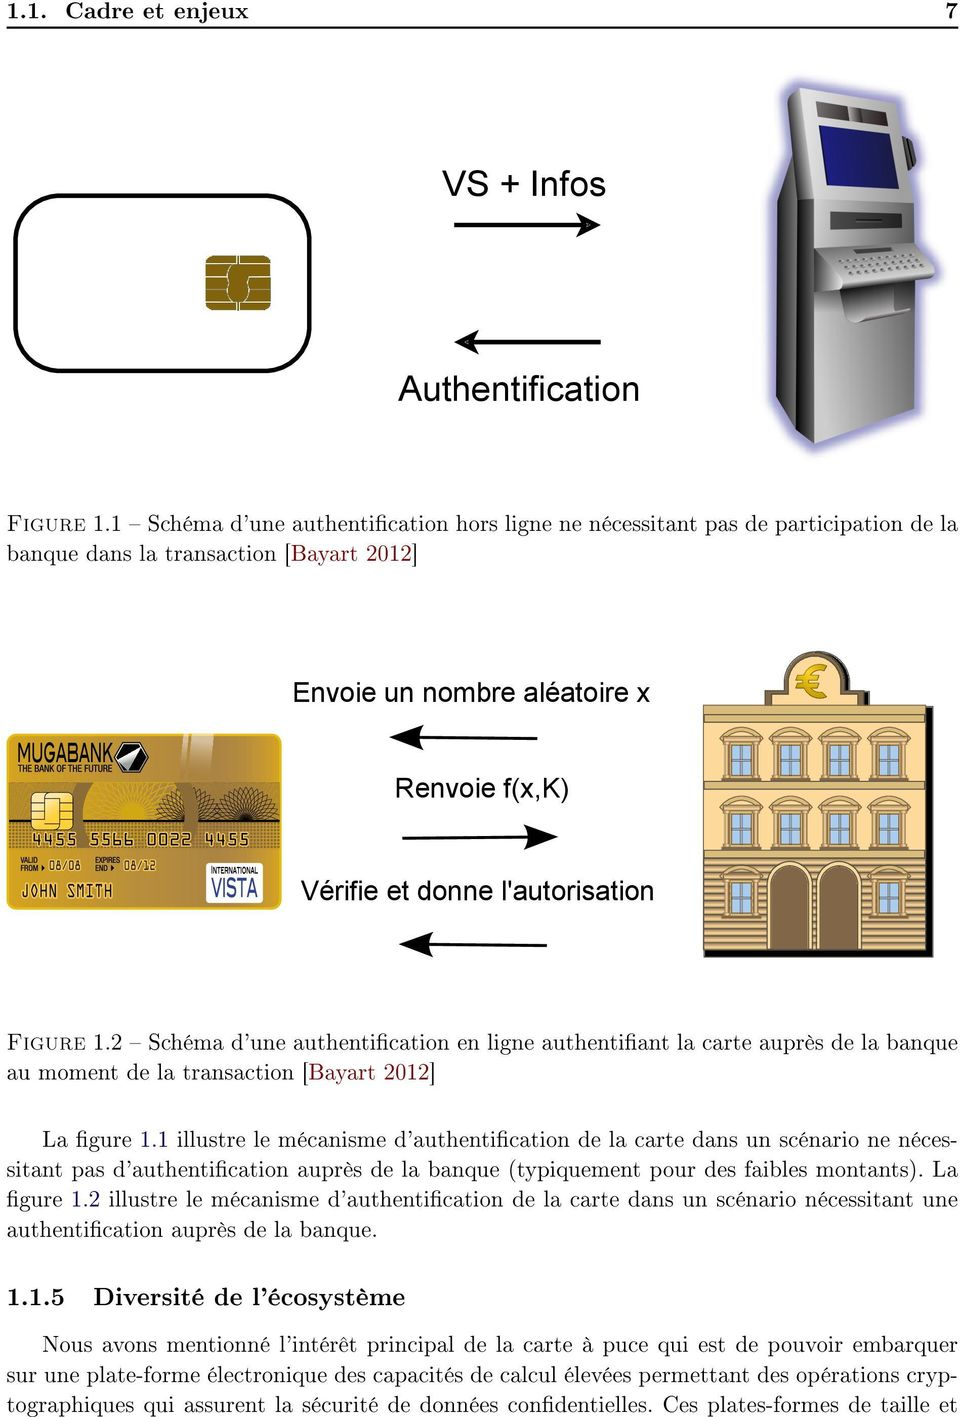 Figure 1.2 Schéma d'une authentication en ligne authentiant la carte auprès de la banque au moment de la transaction [Bayart 2012] La gure 1.